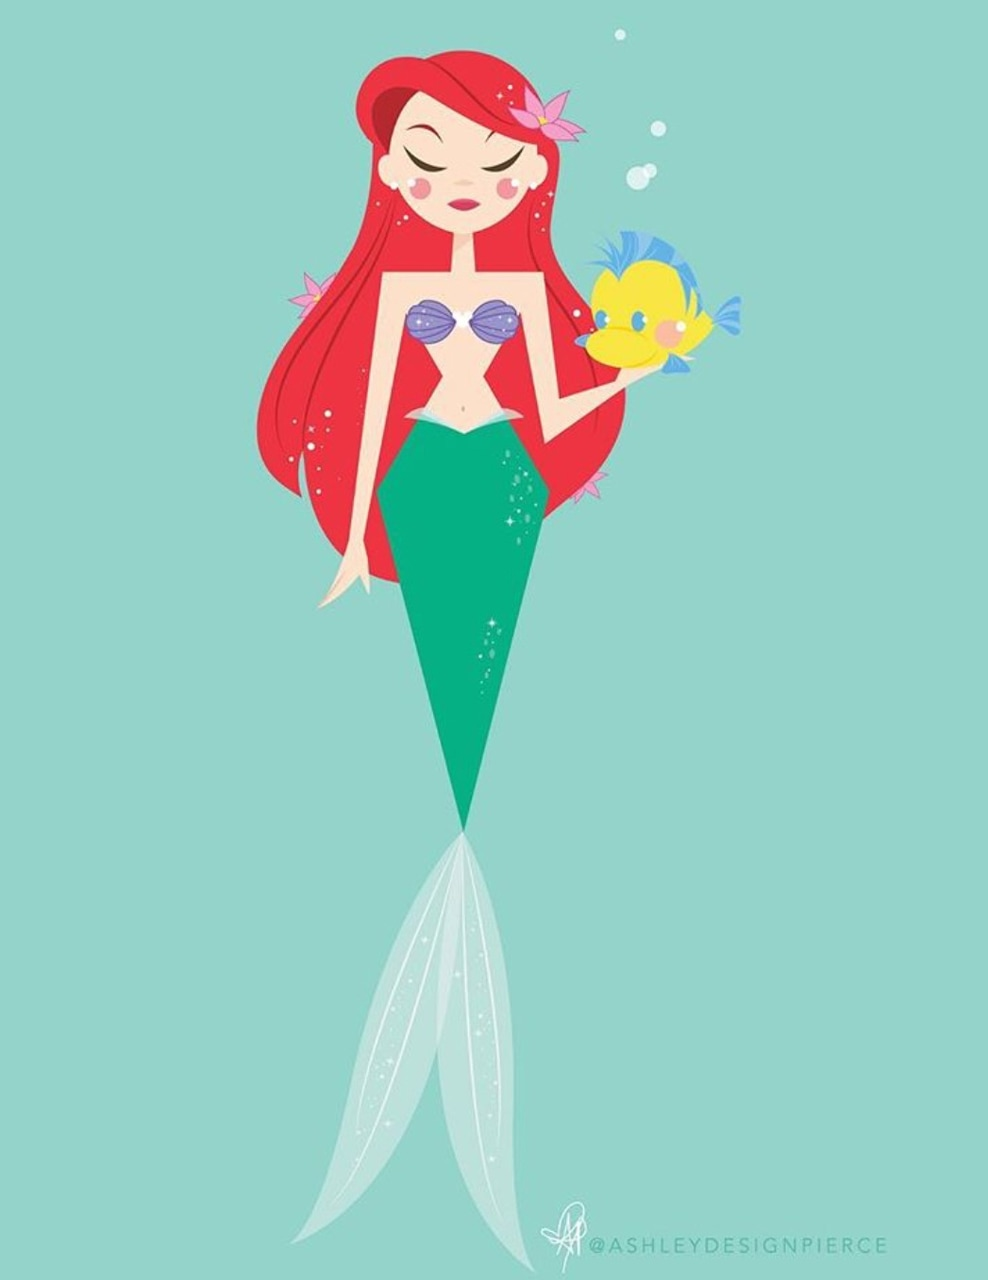 film, creativity, the little mermaid and drawing